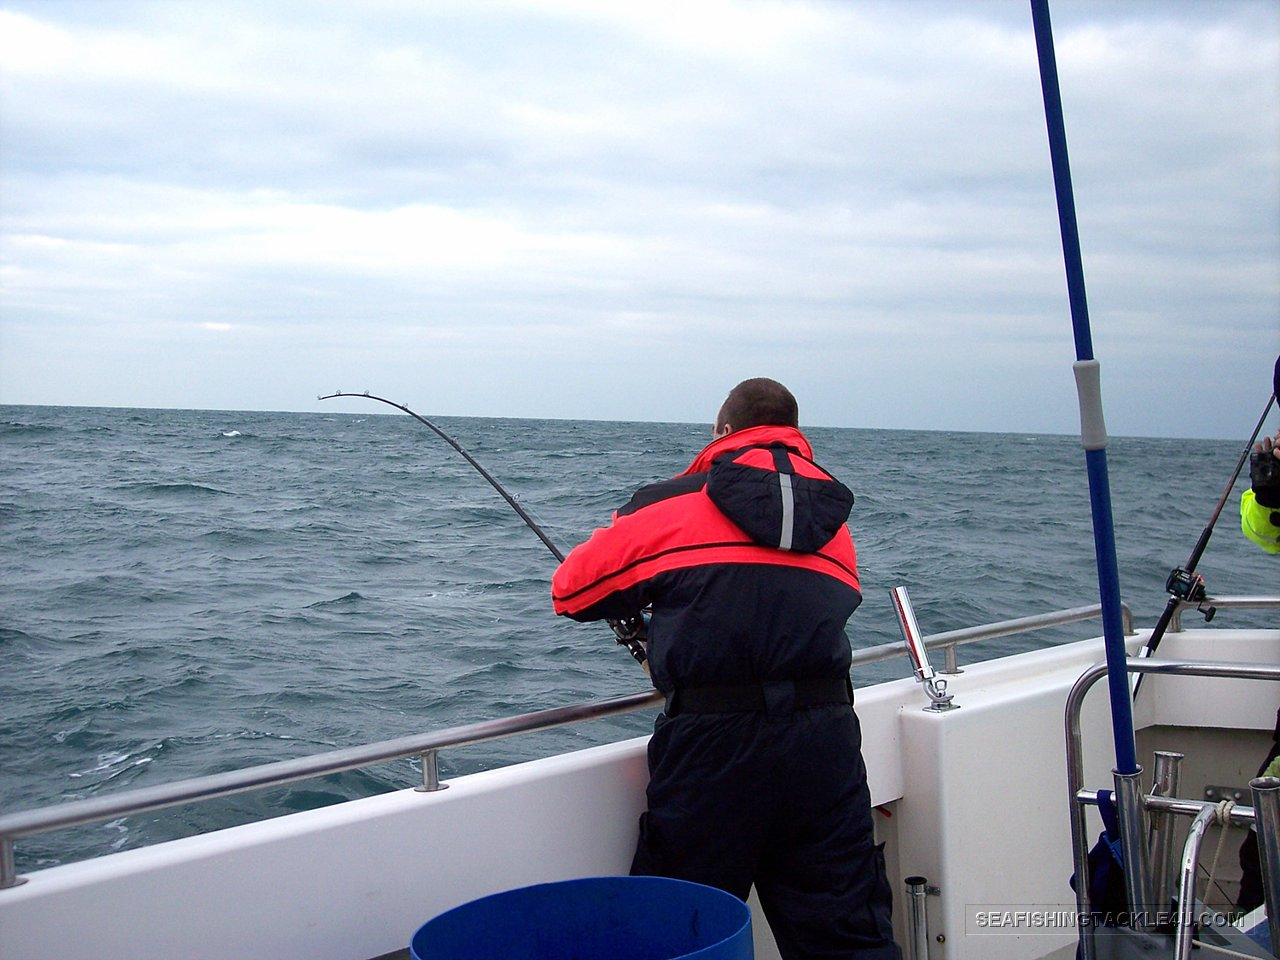 Sea fishing gallery sea fishing tackle and lure fishing for Ocean fishing gear